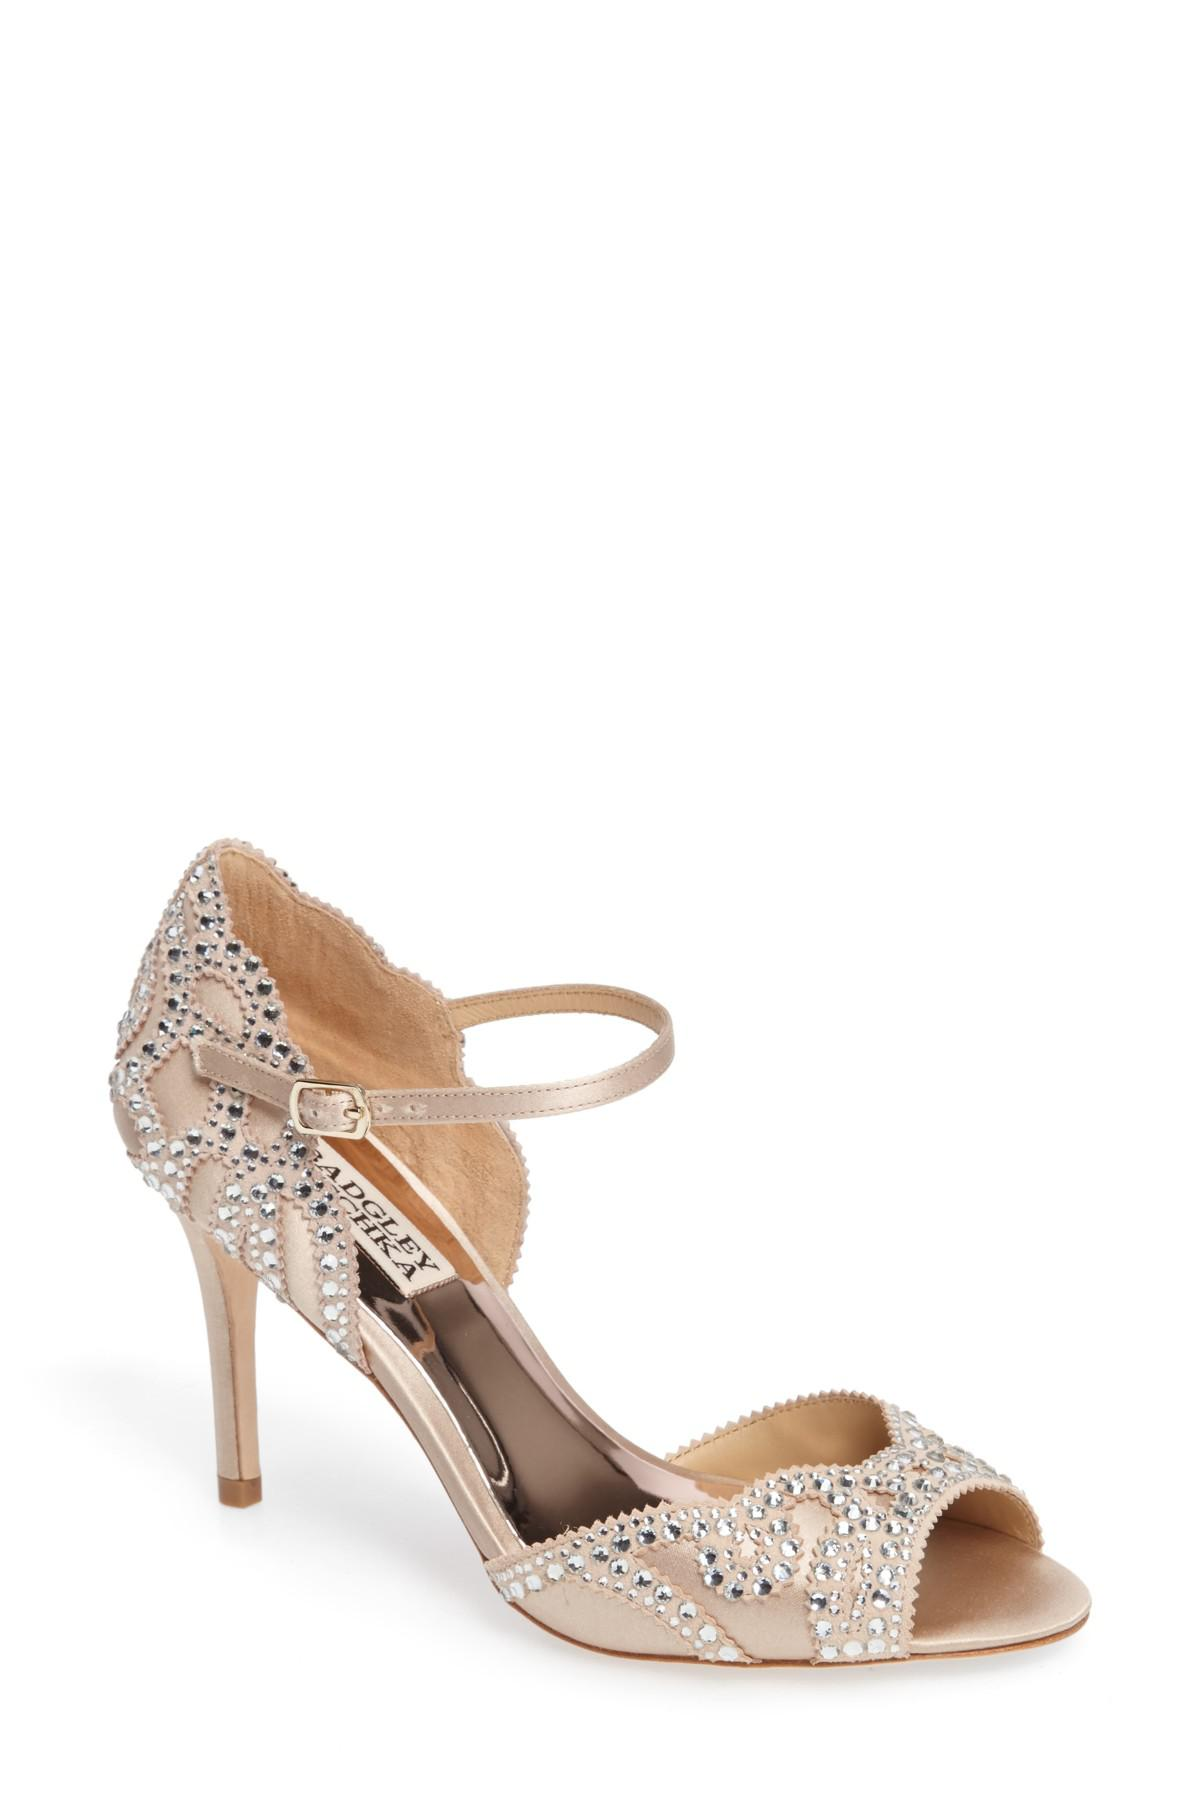 eec94fd0050e Lyst - Badgley Mischka Belinda Ankle Strap Pump in Natural